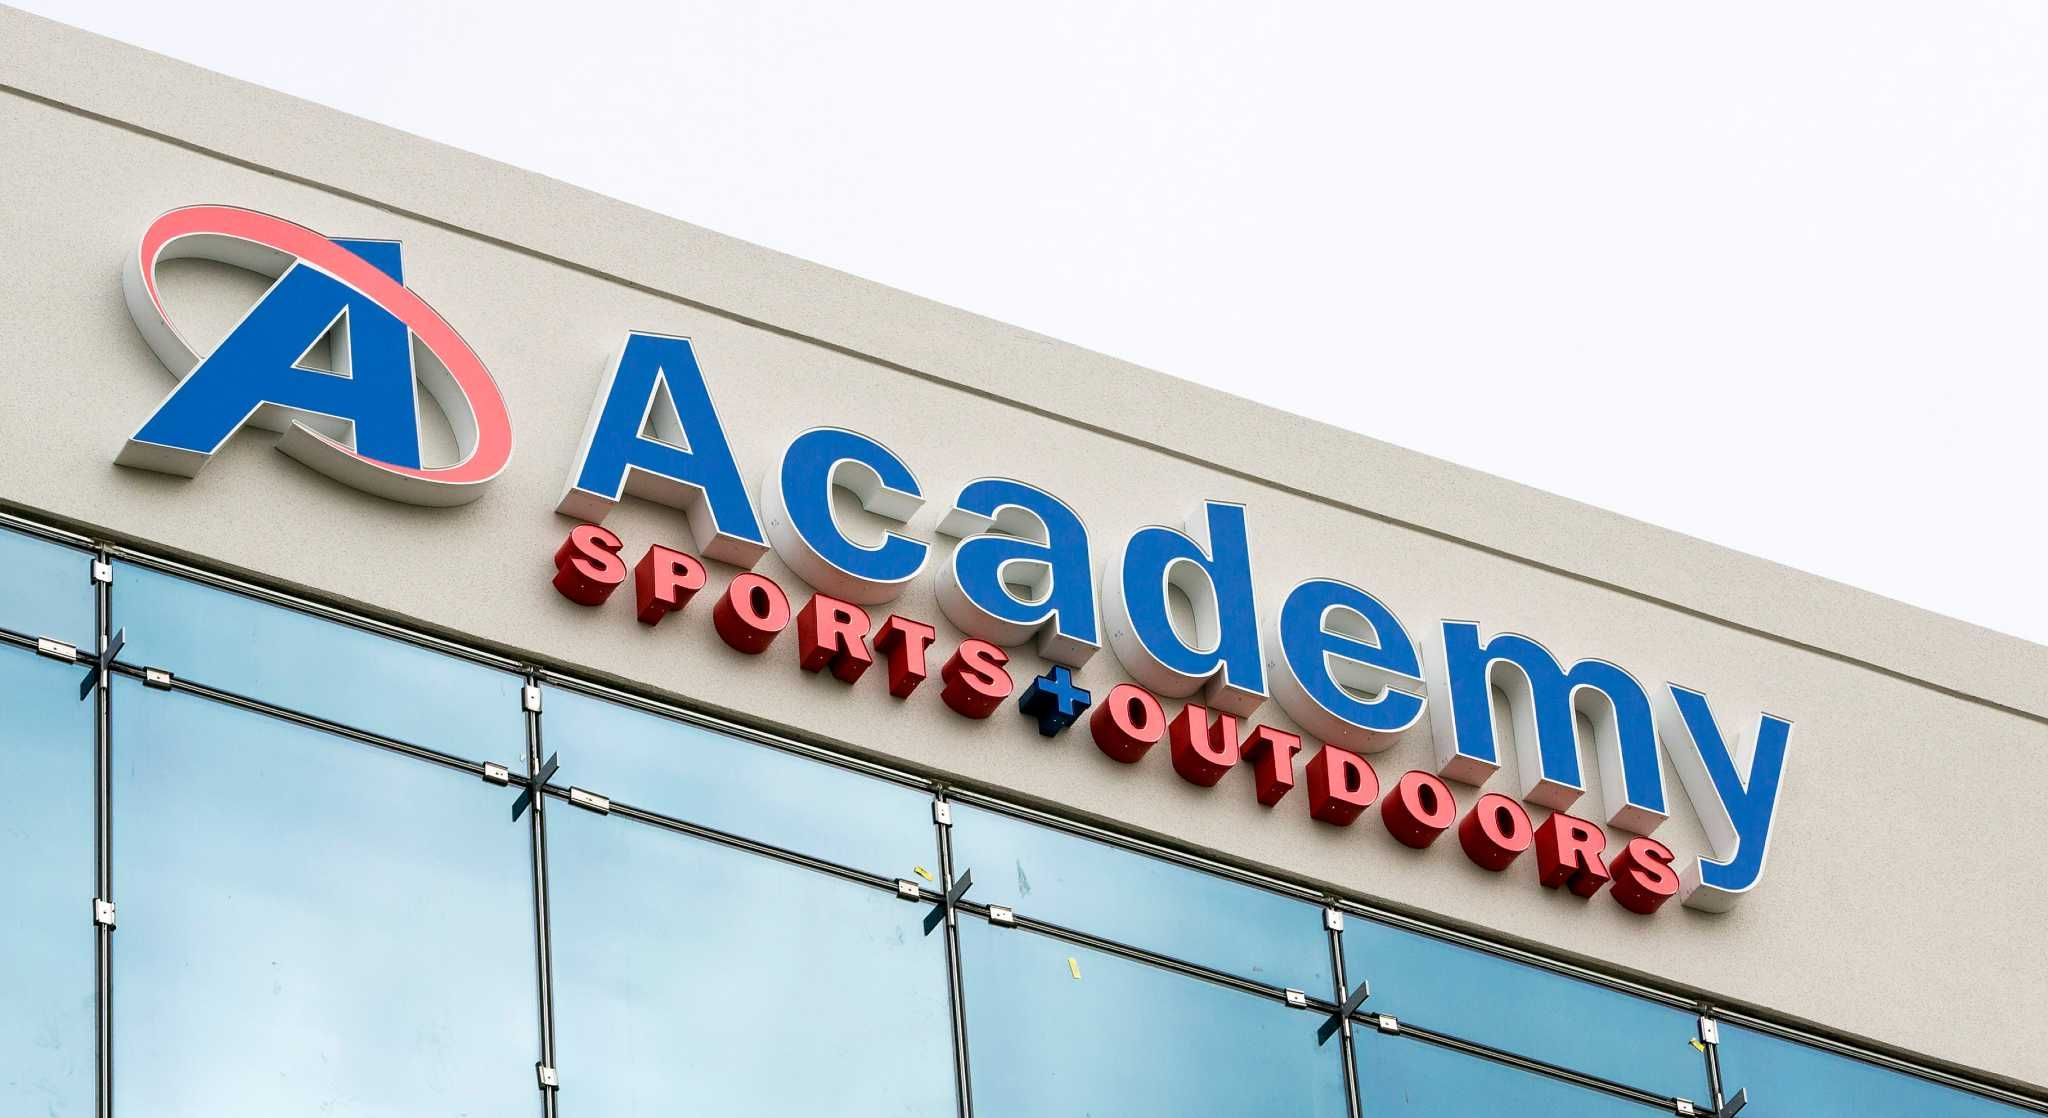 Academy sports outdoors opens distribution center in